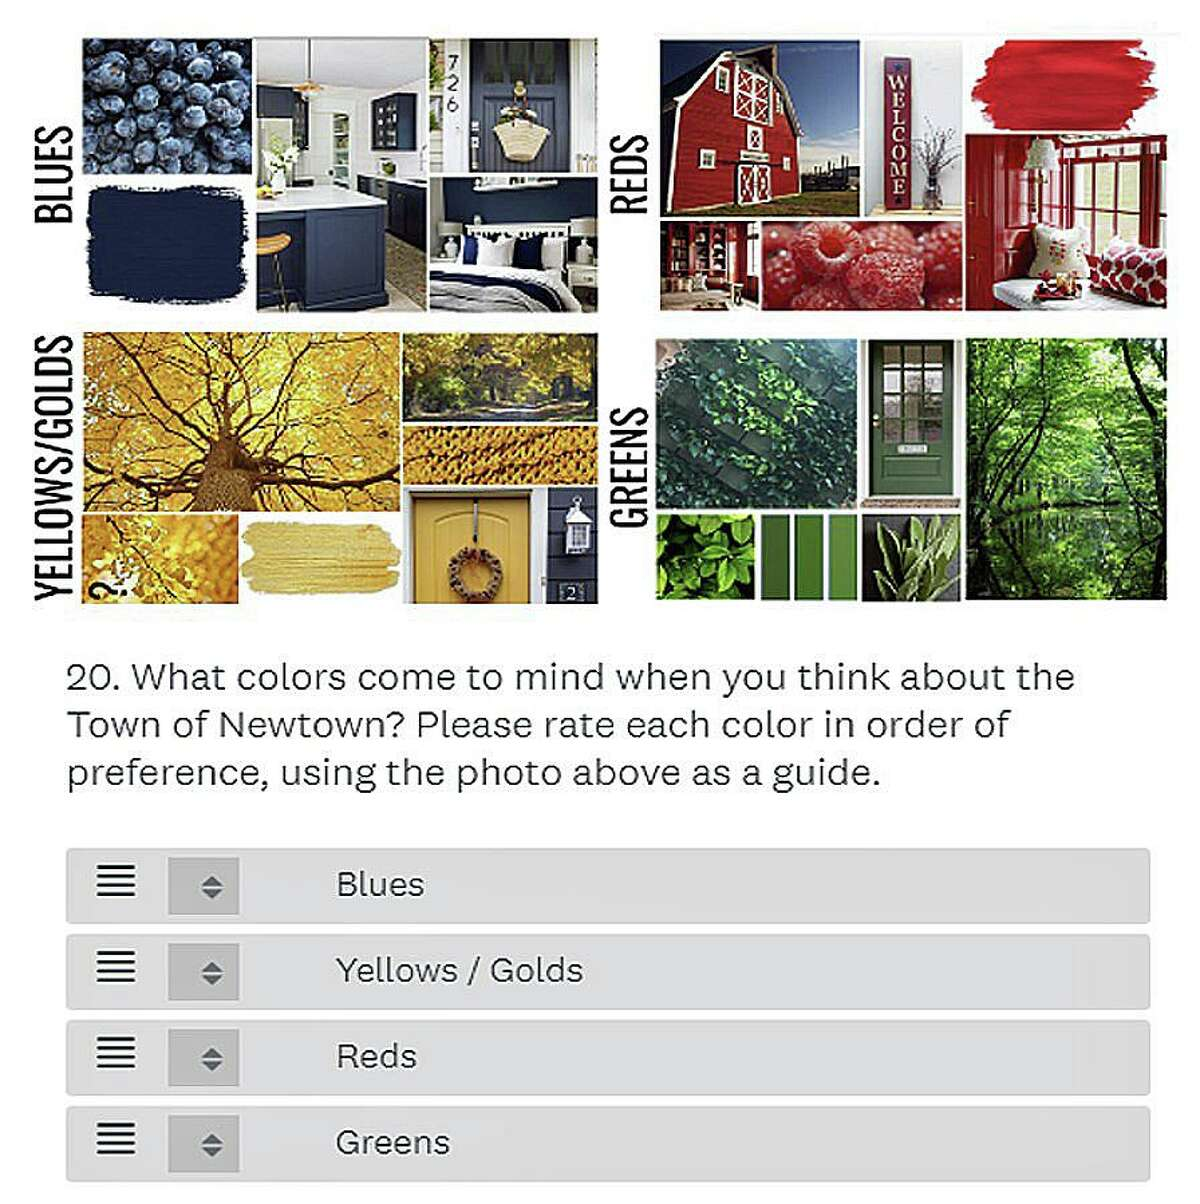 A sample survey question for Newtown's branding campaign.